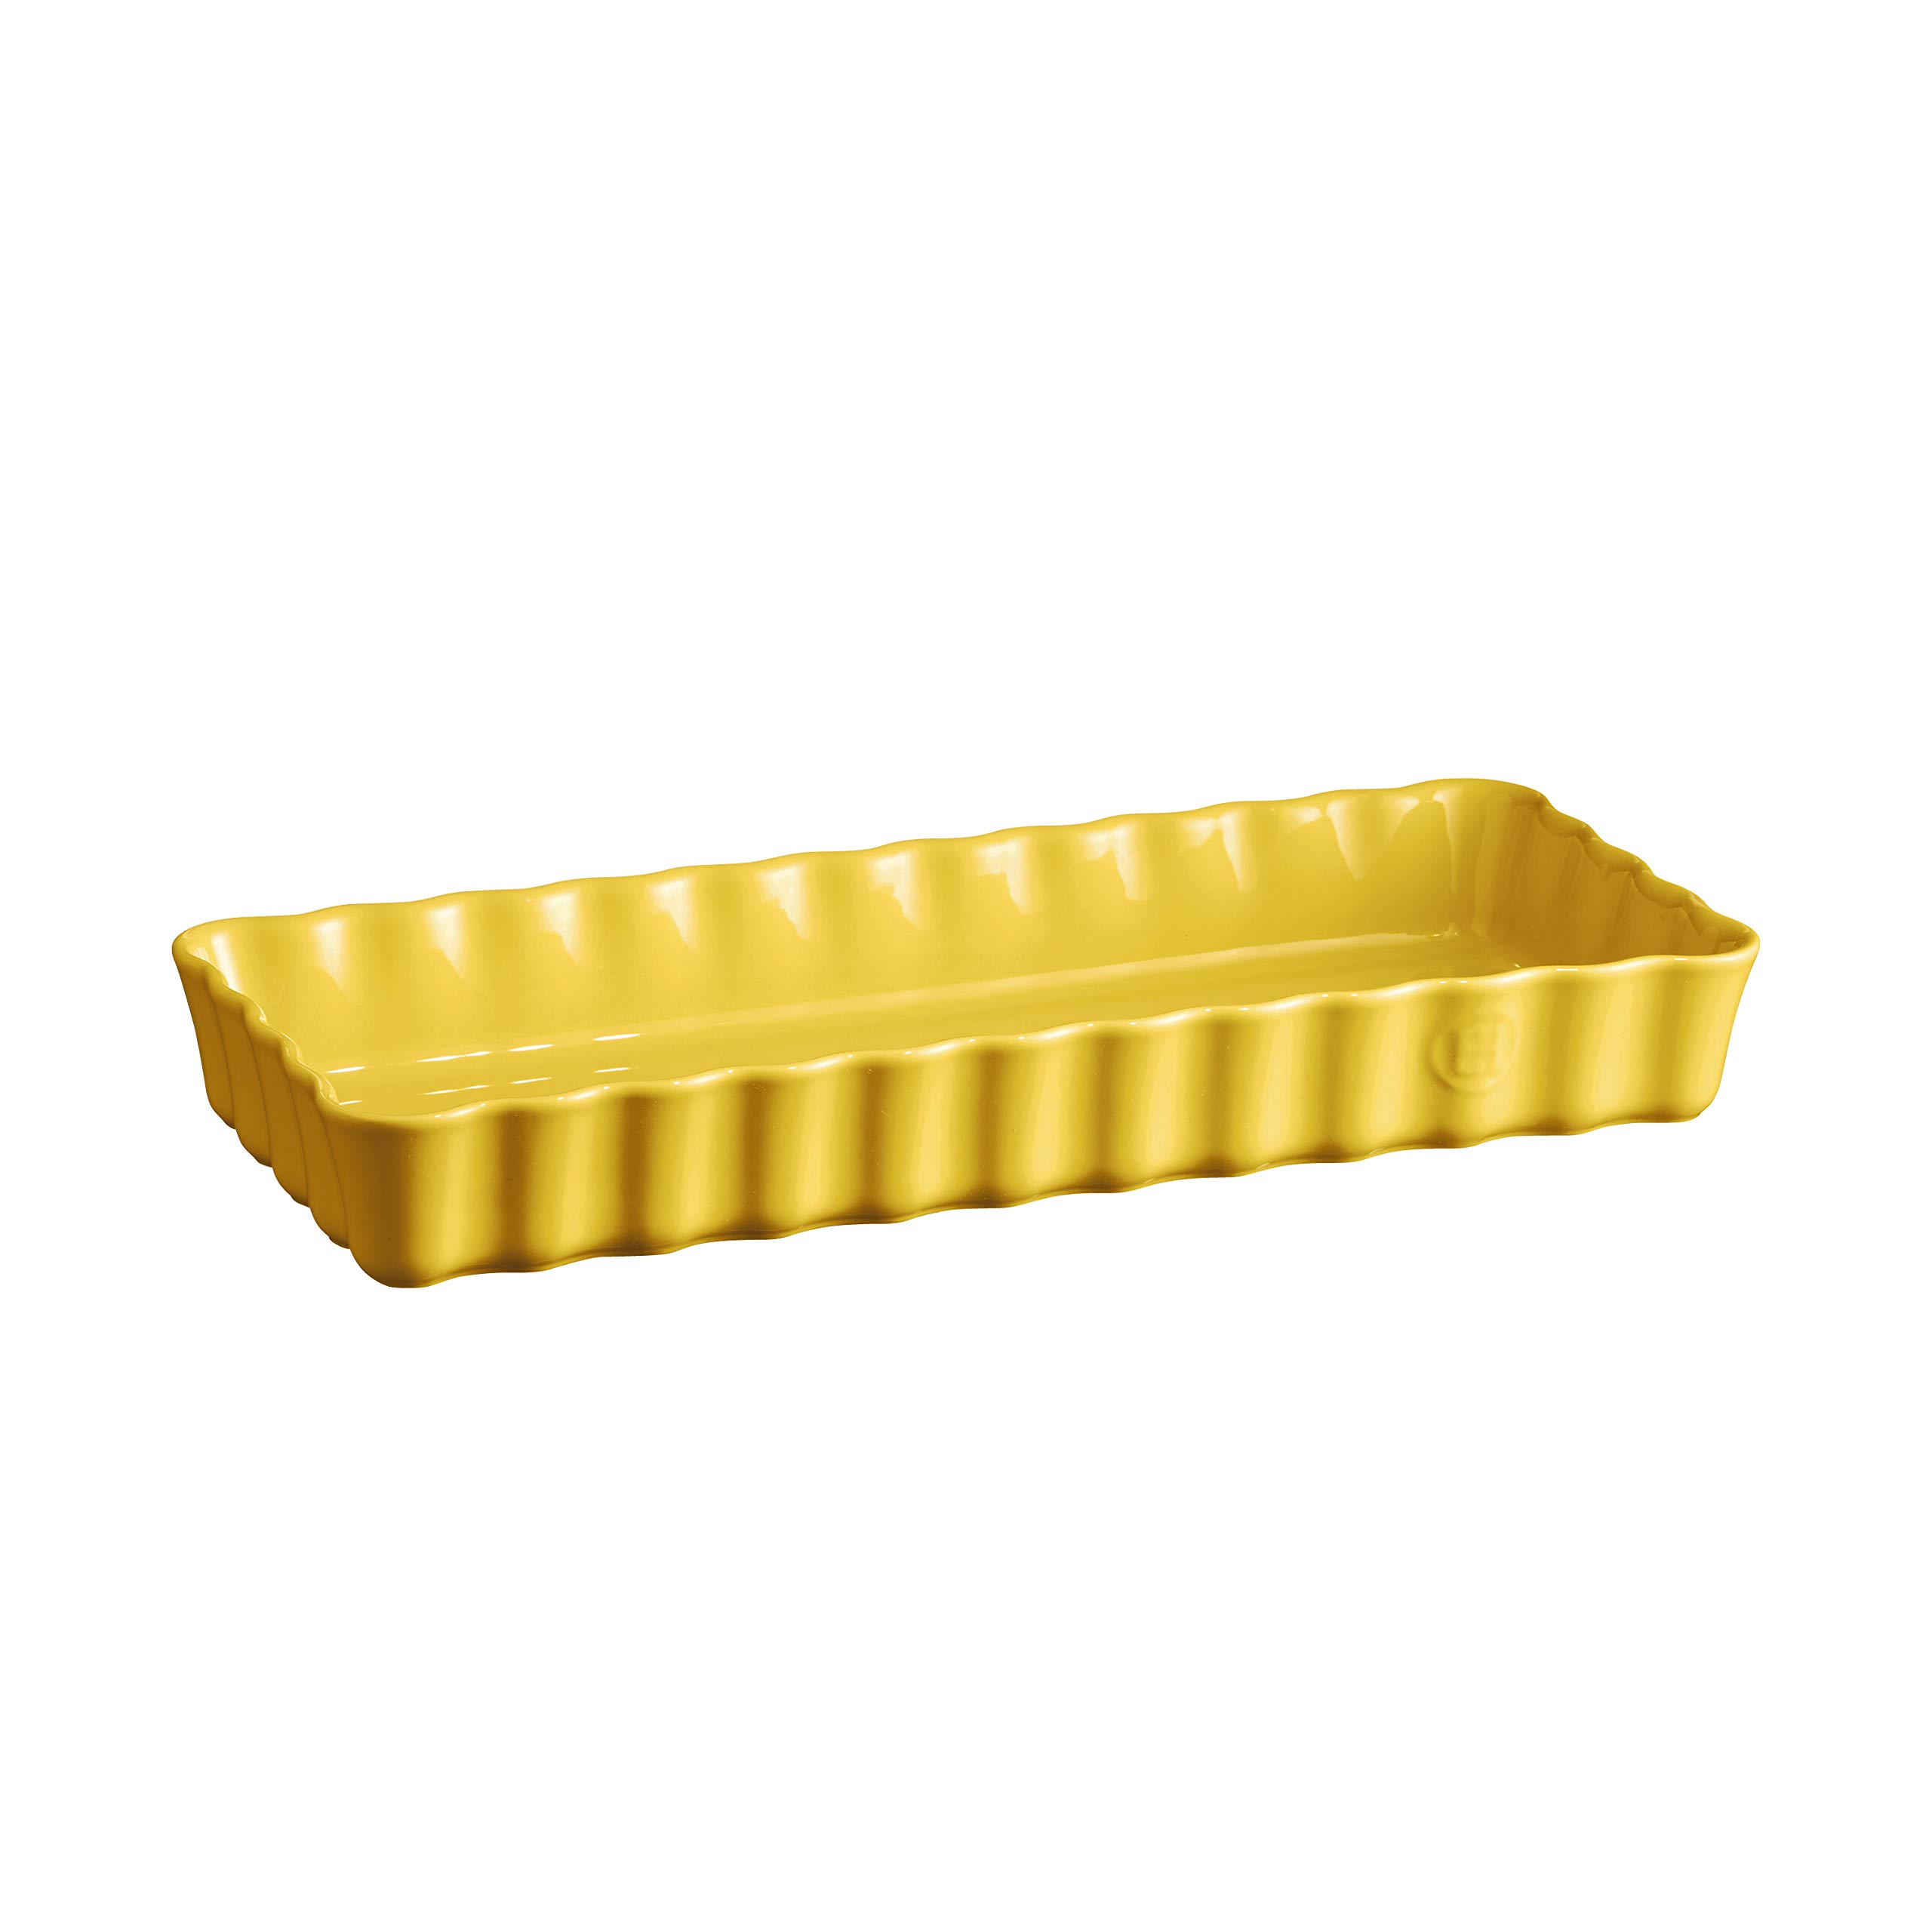 Emile Henry 906034 Small, Provence Yellow Rectangular Tart Dish, 1.7 qt,